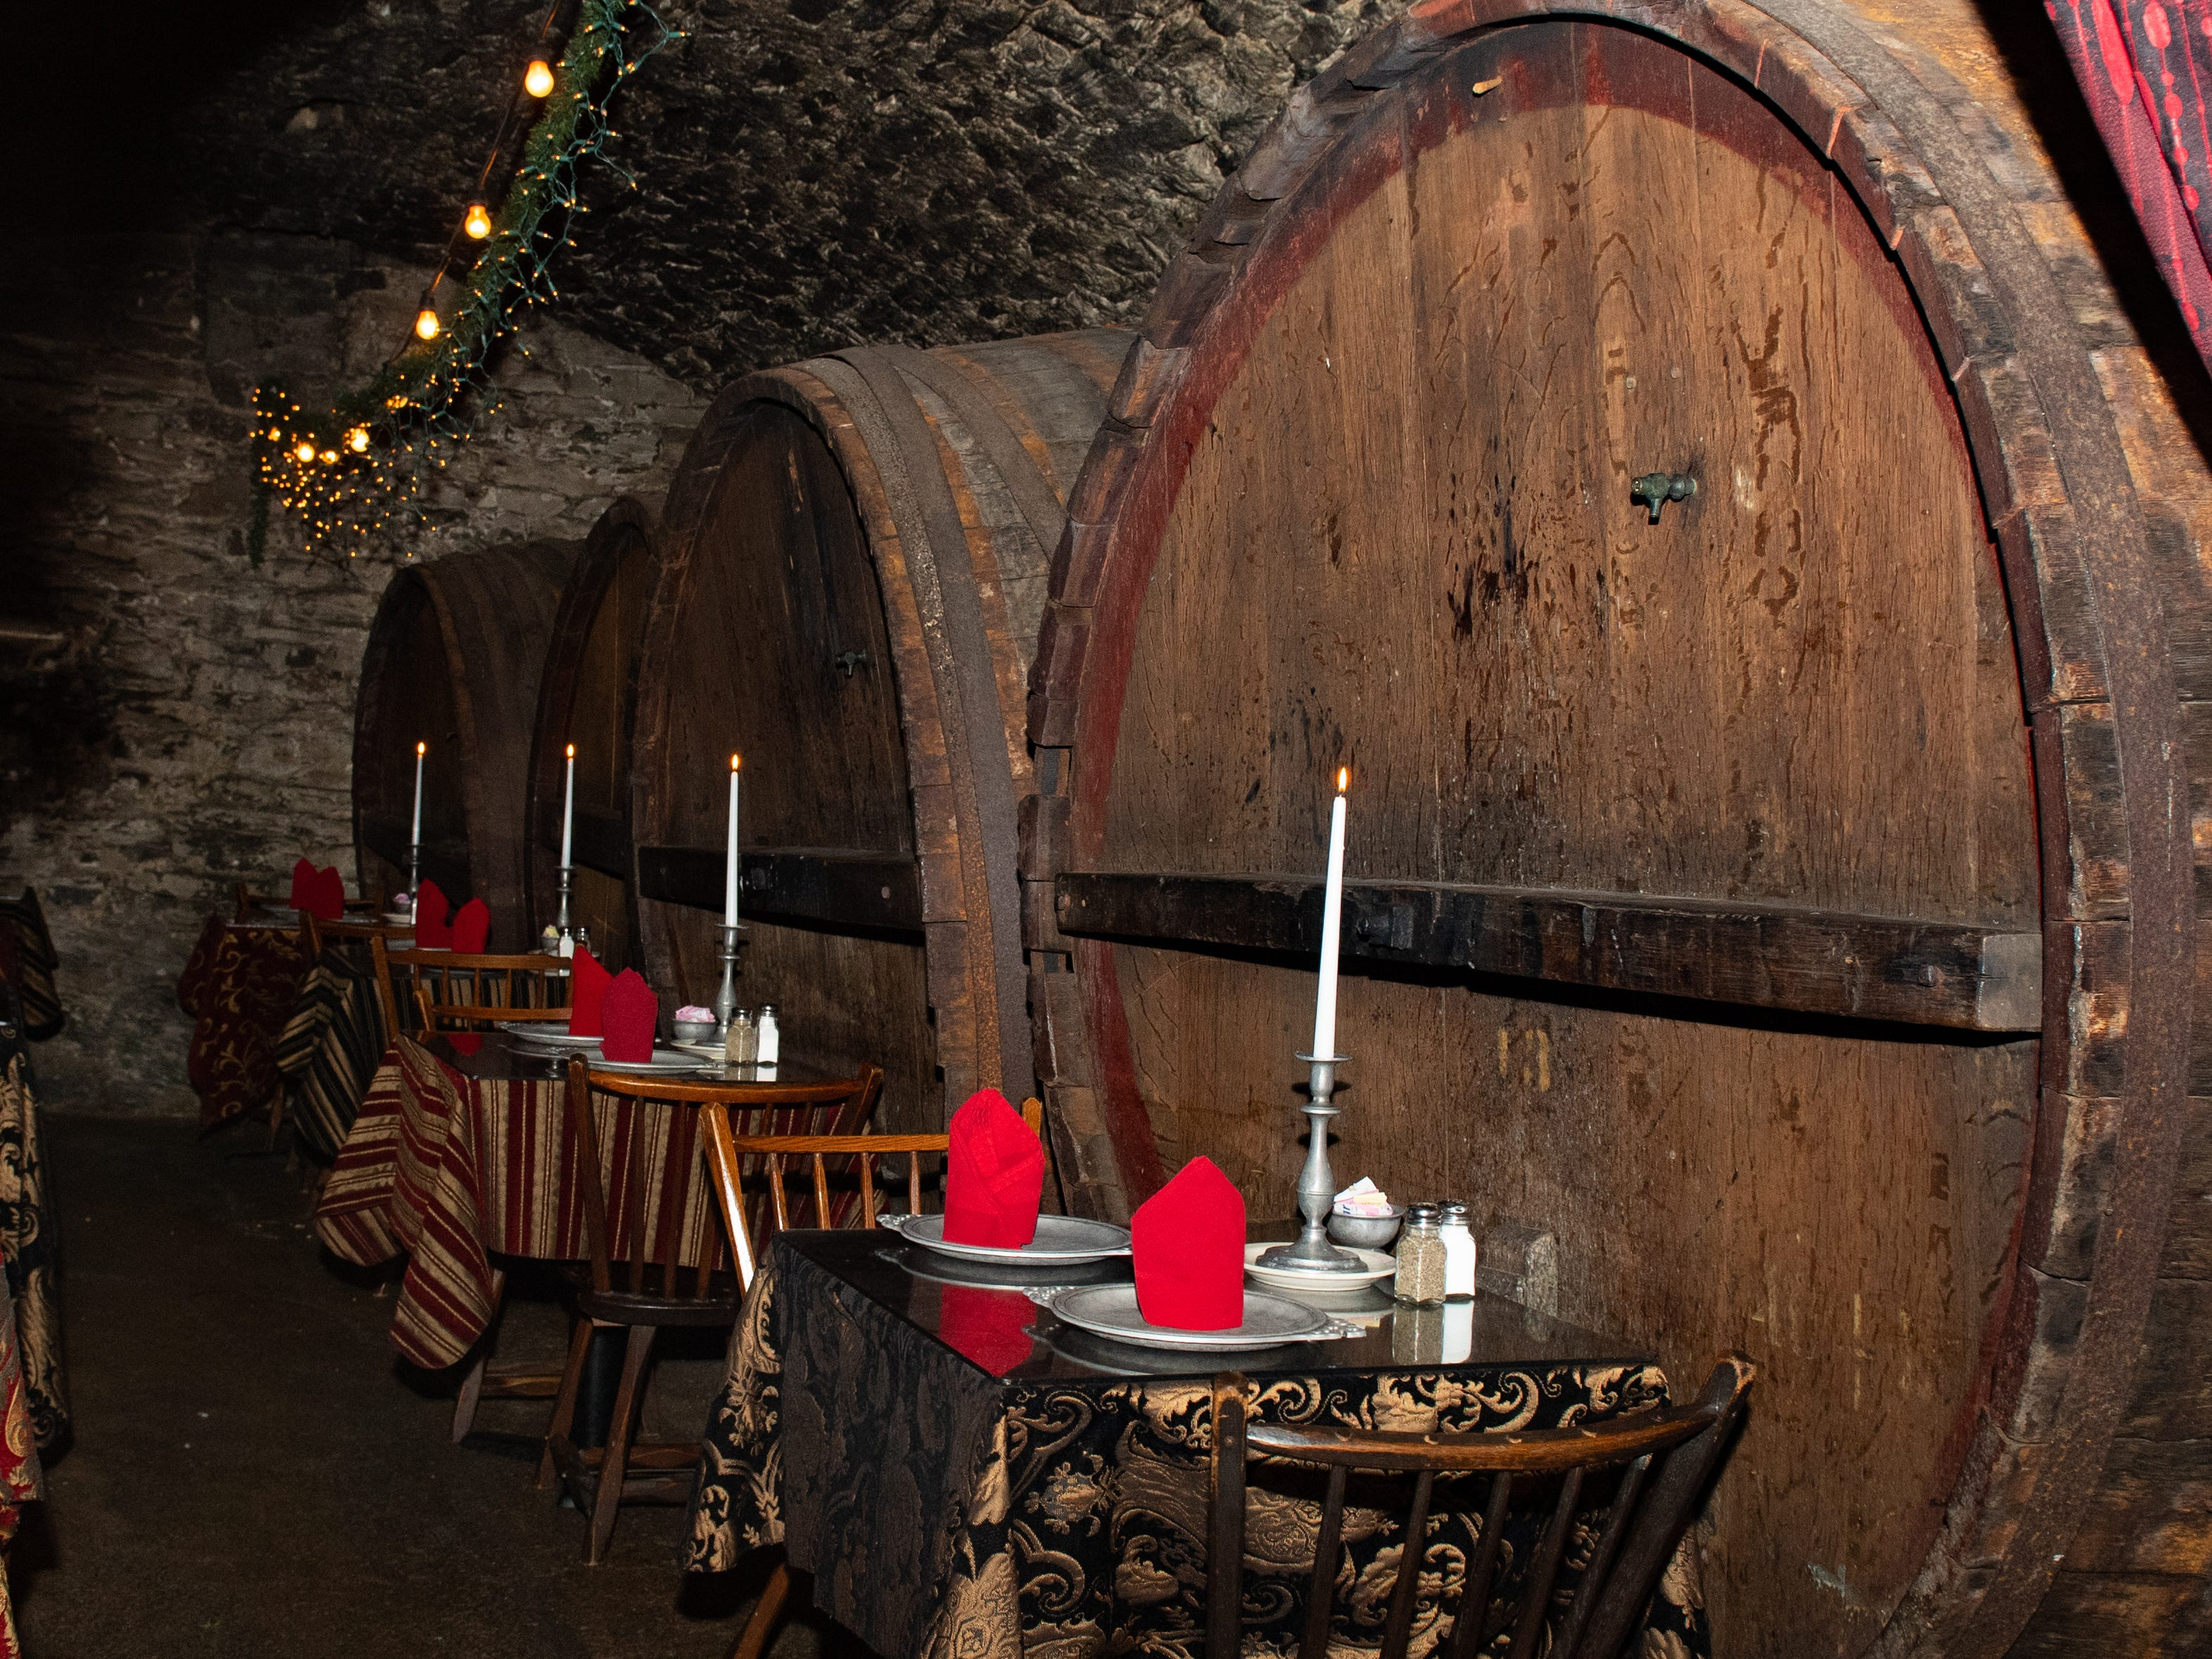 In the Catacombs of Bube's Brewery, customers have the unique fine dining experience in a cave below the brewery. The 140-seat dining area is reserved for nightly service and also hosts speciality 'feasts' monthly including a Roman-themed and pirate-themed feasts, February 22, 2019.